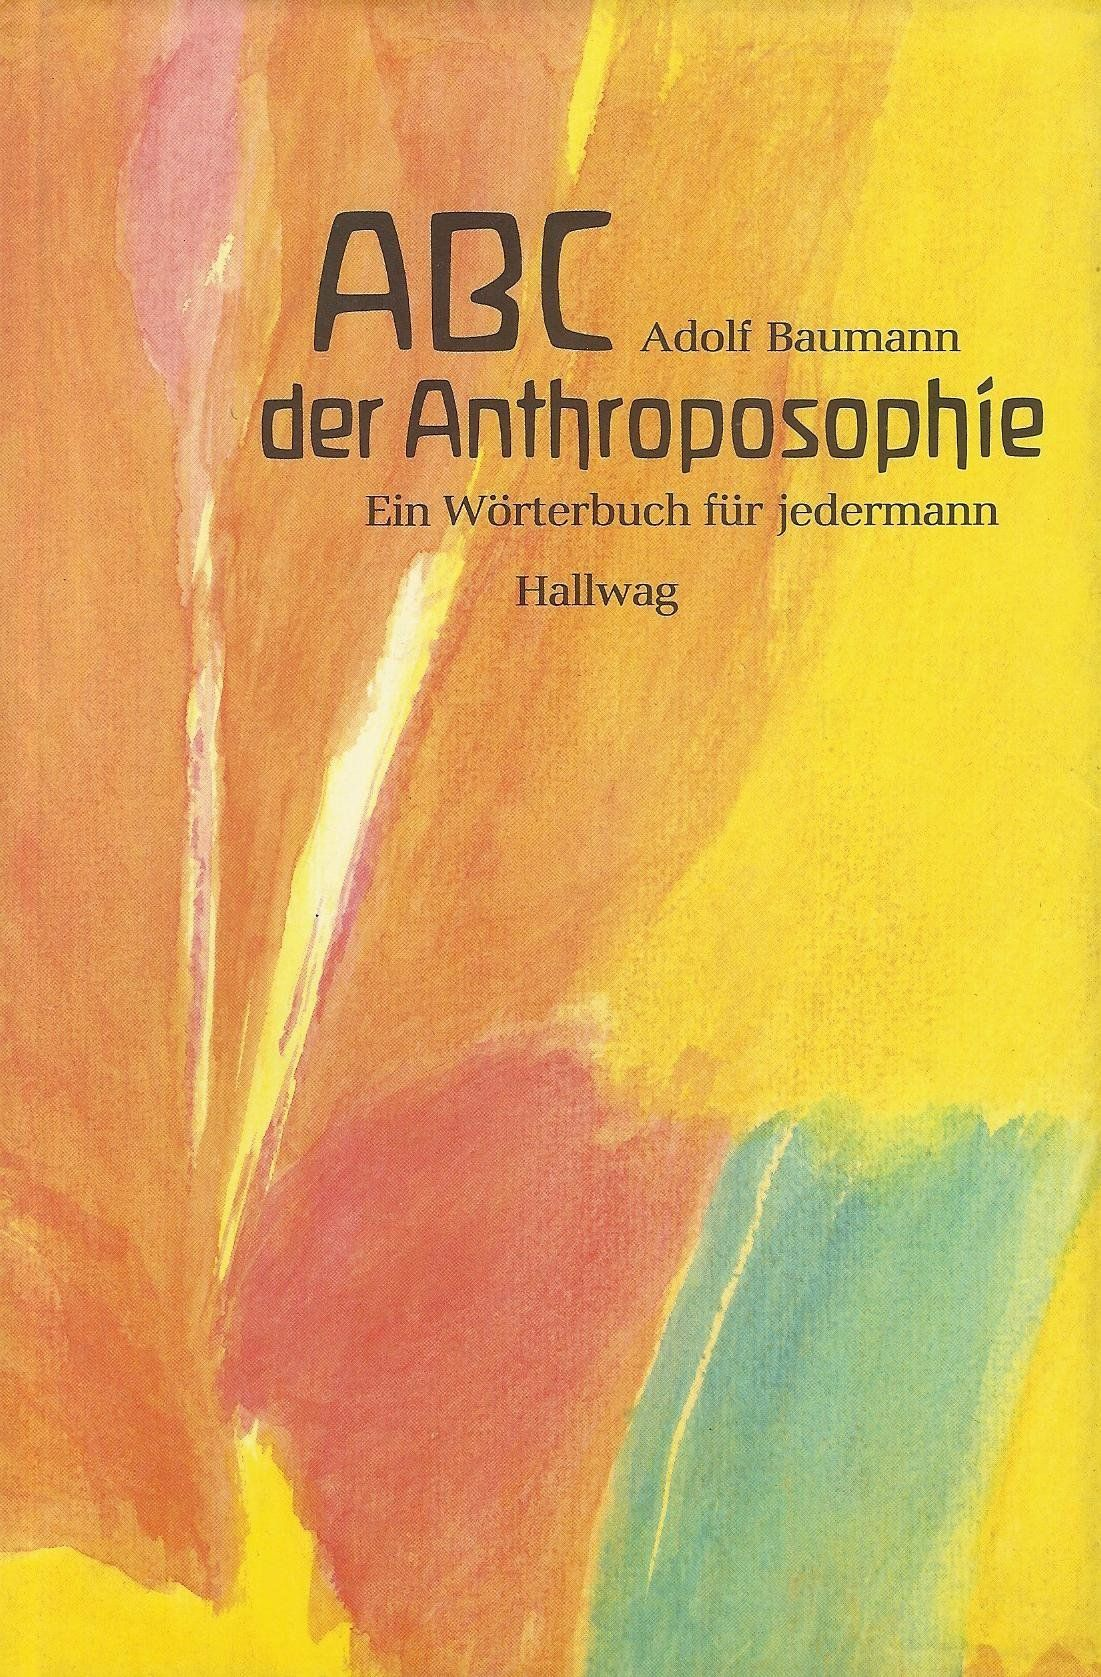 Abc Der Anthroposophie Ein Worterbuch Fur Jedermann Adolf Baumann Anthroposophie Rudolf Steiner Abc